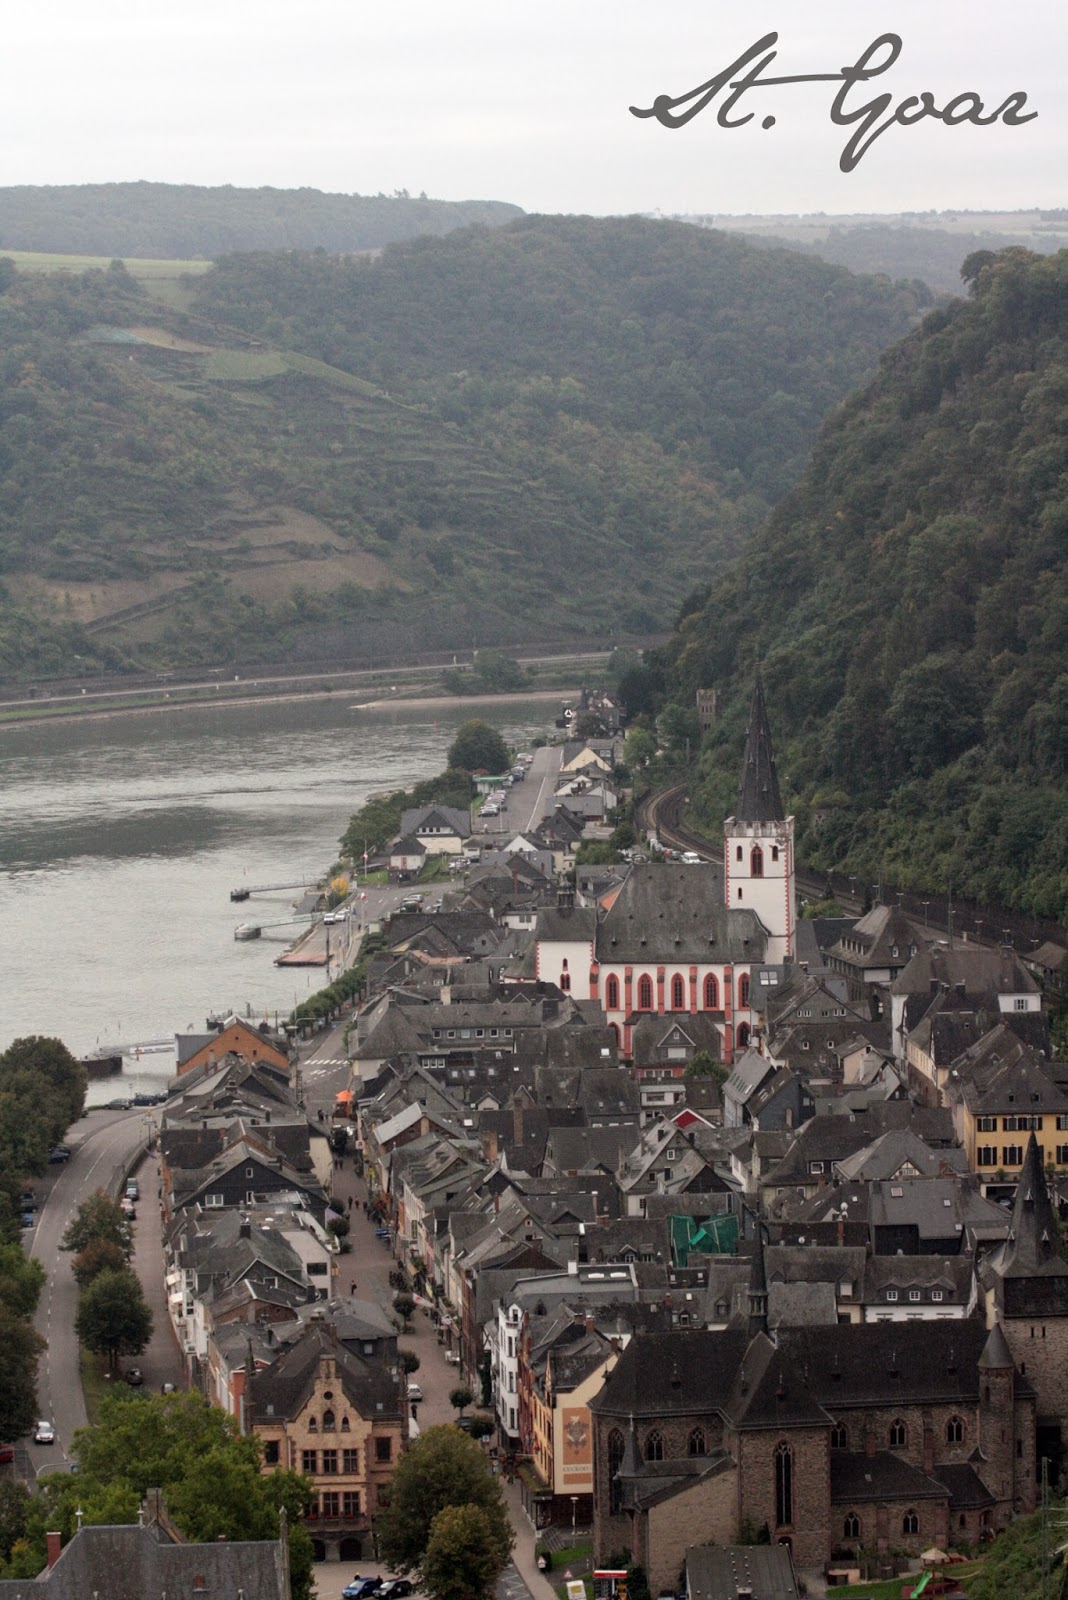 View of St. Goar from Castle Rheinfels - The Tipsy Terrier blog